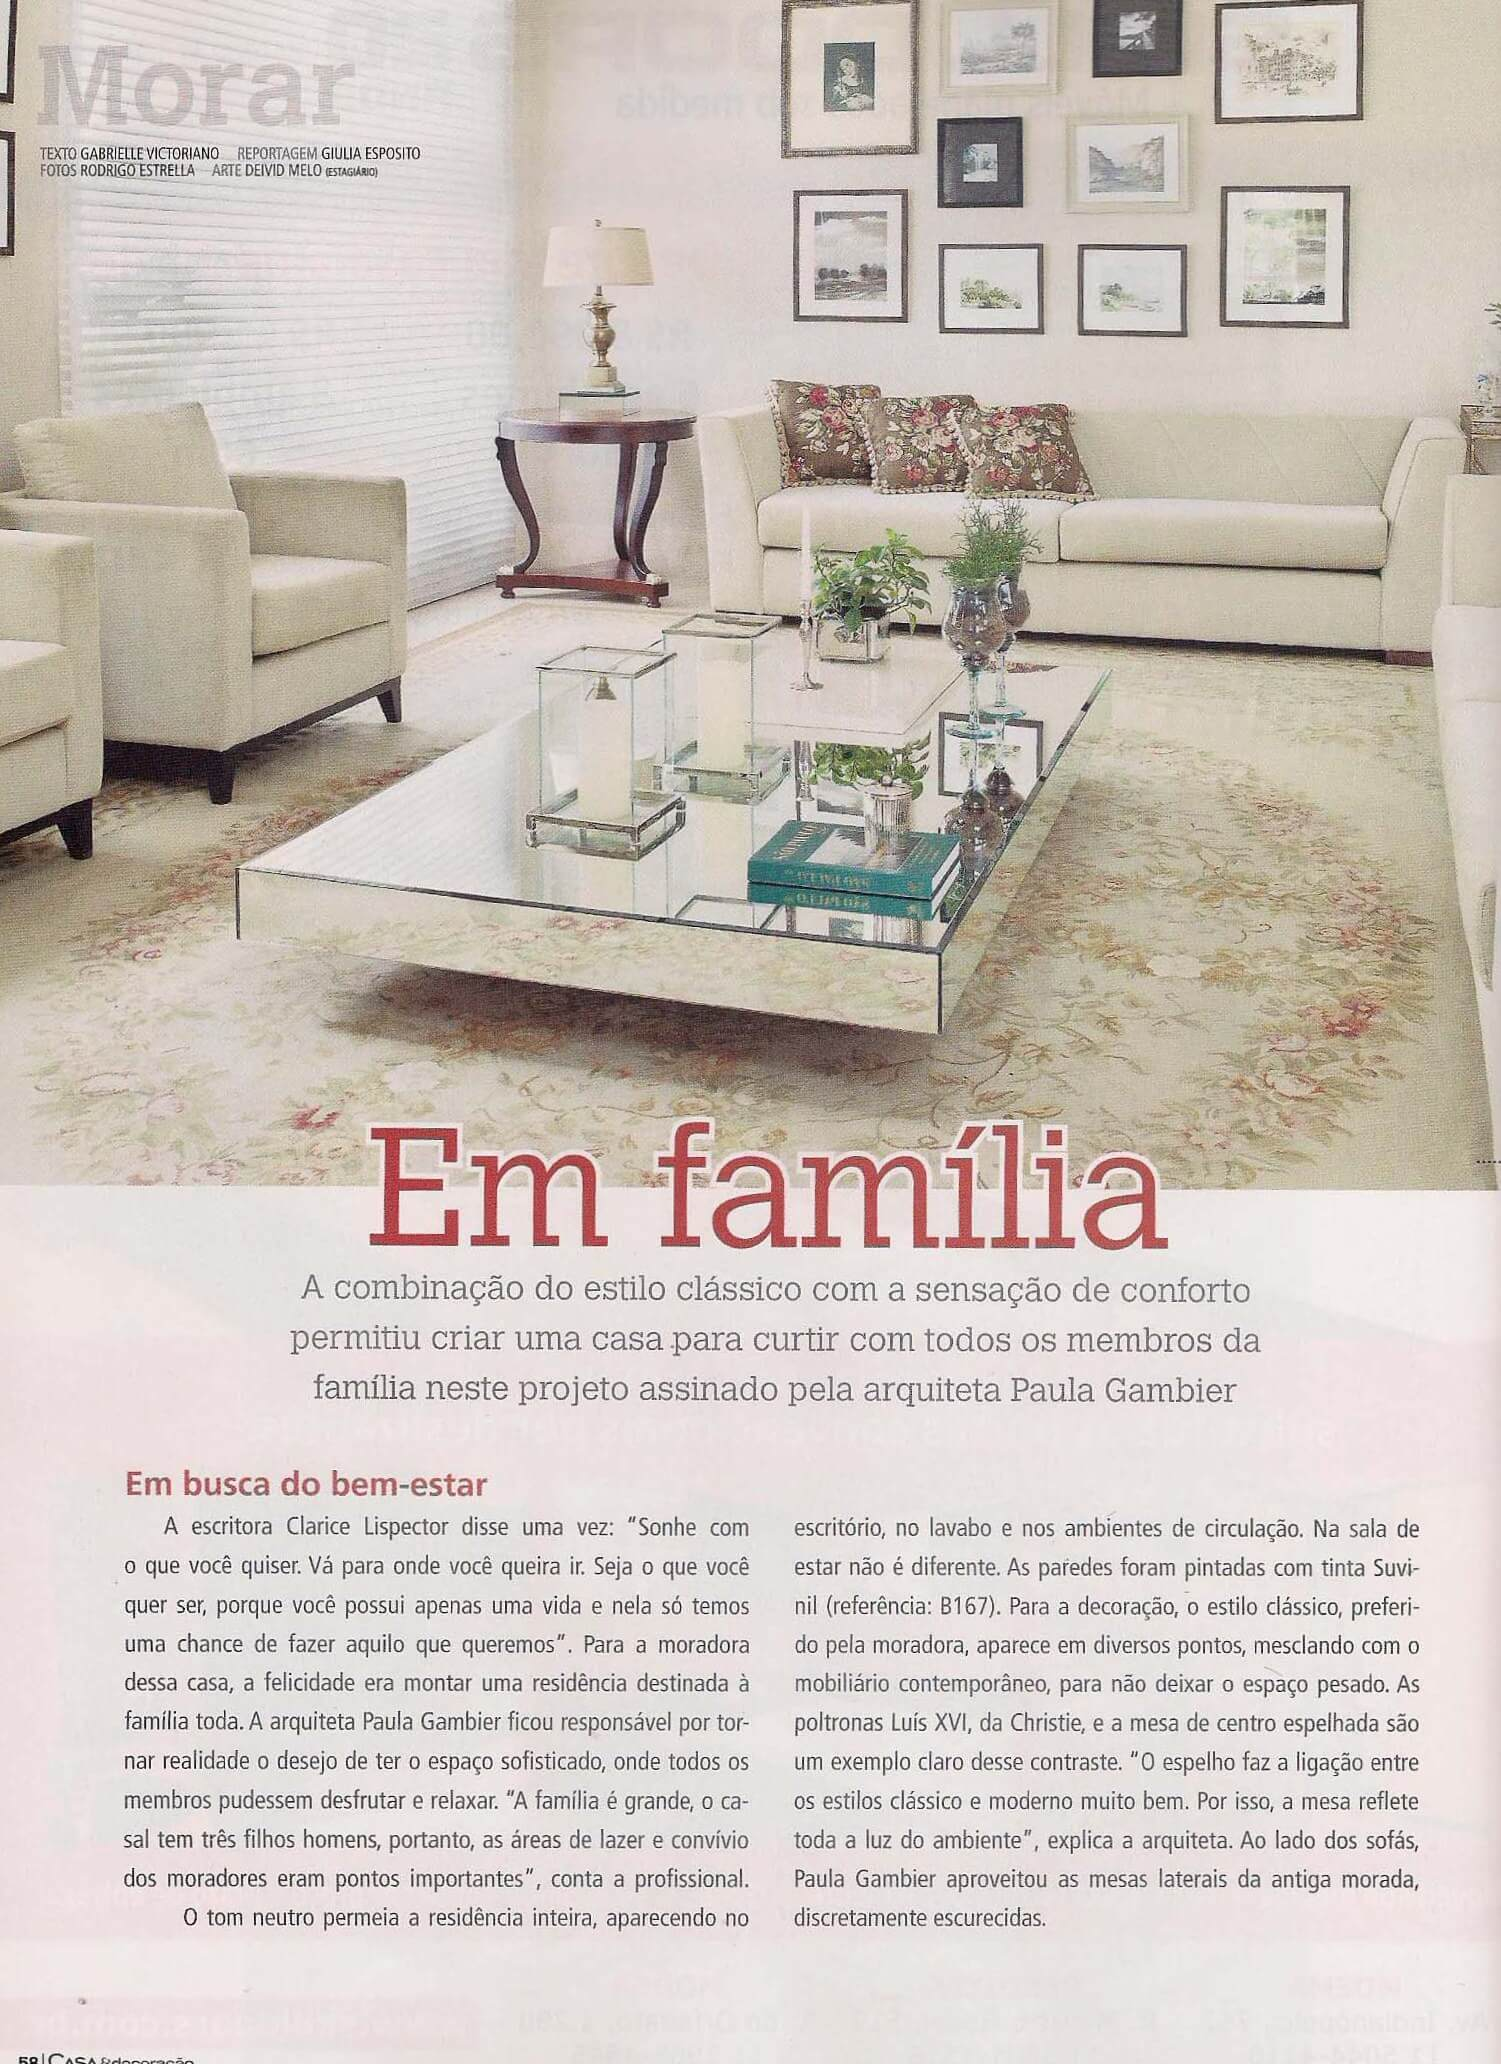 Casa & Decoracao   - out  2012 - 2